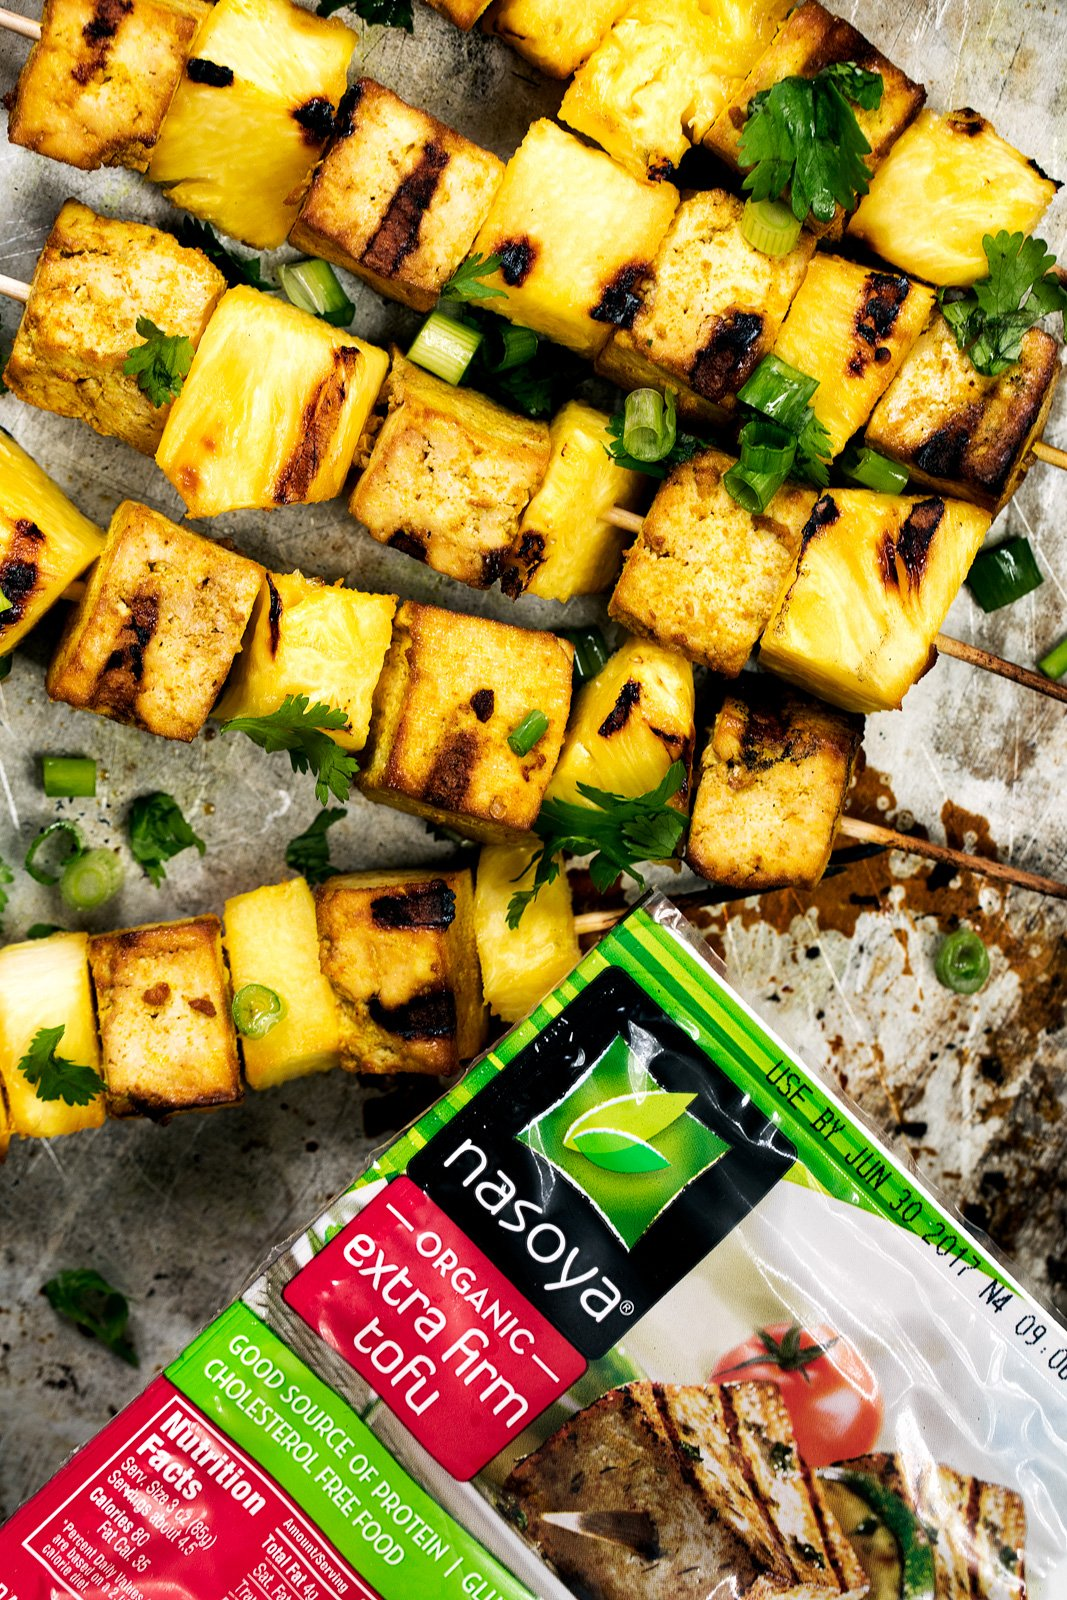 tofu kabobs next to a package of tofu